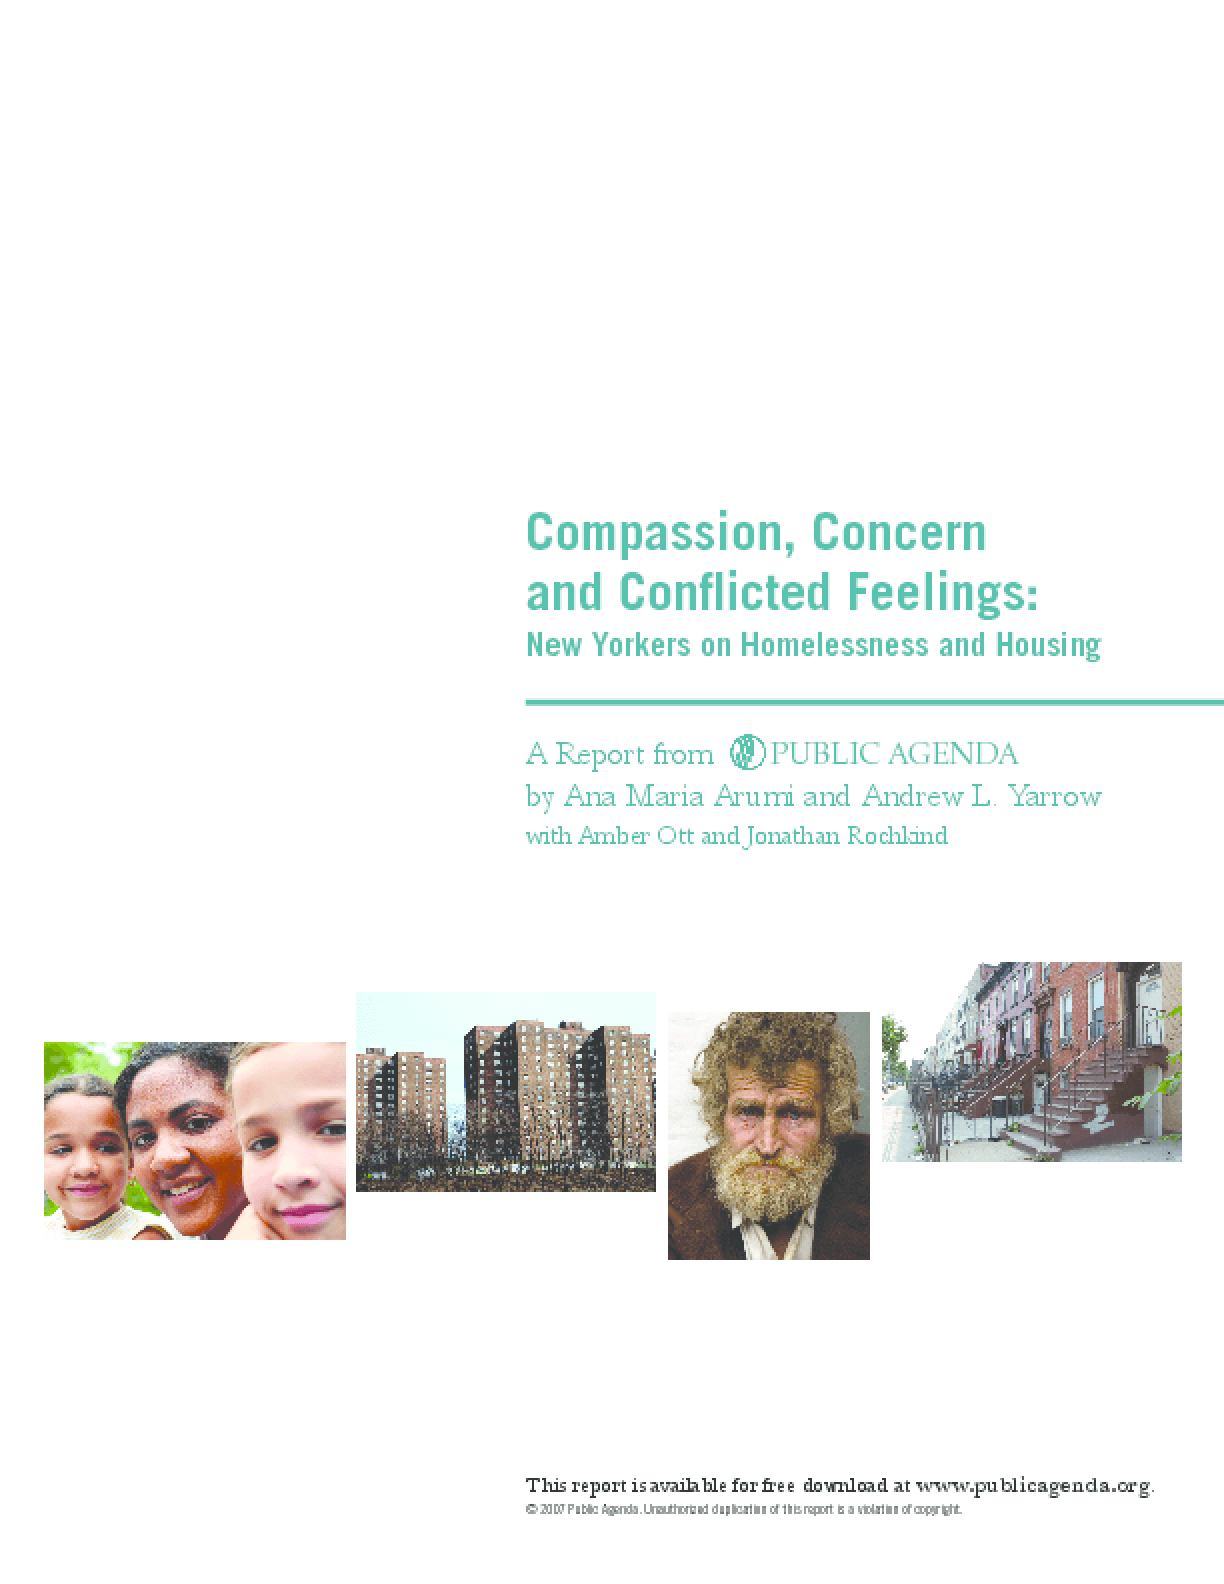 Compassion, Concern and Conflicted Feelings: New Yorkers on Homelessness and Housing